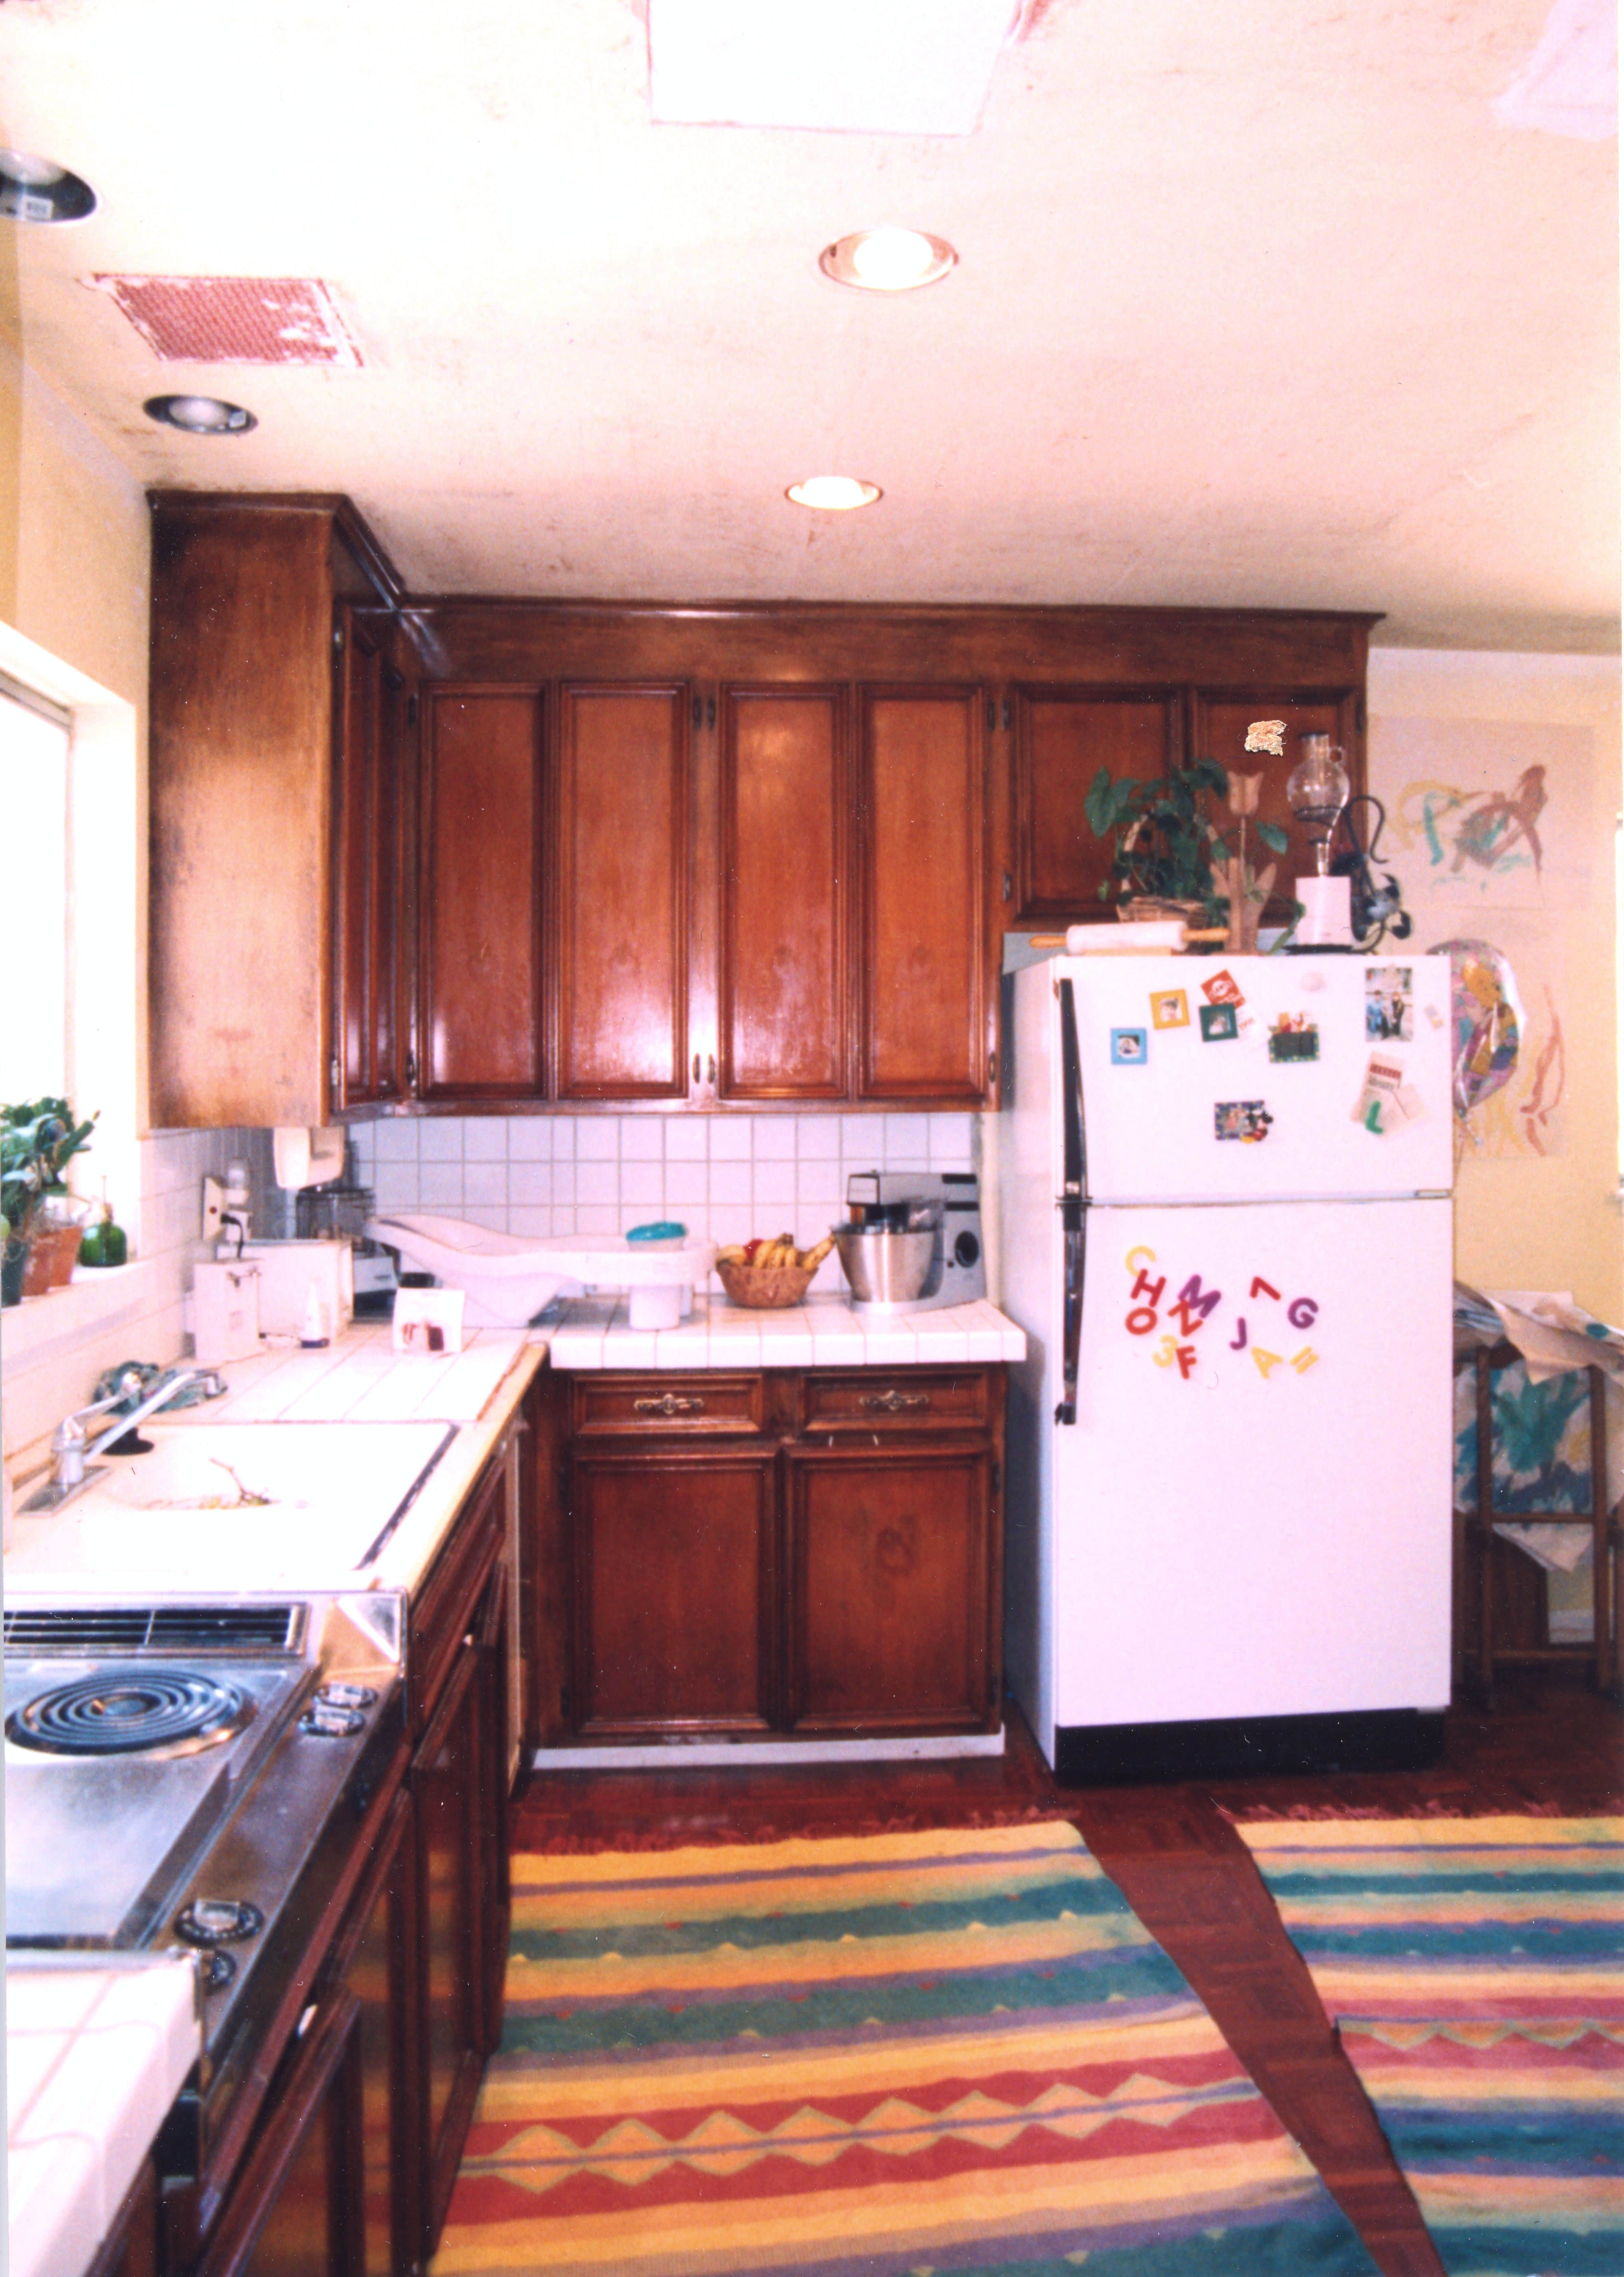 Before: Original cabinets were modified by previous owners to install a cooktop next to the sink, with D-I-Y wiring that wasn't to code.